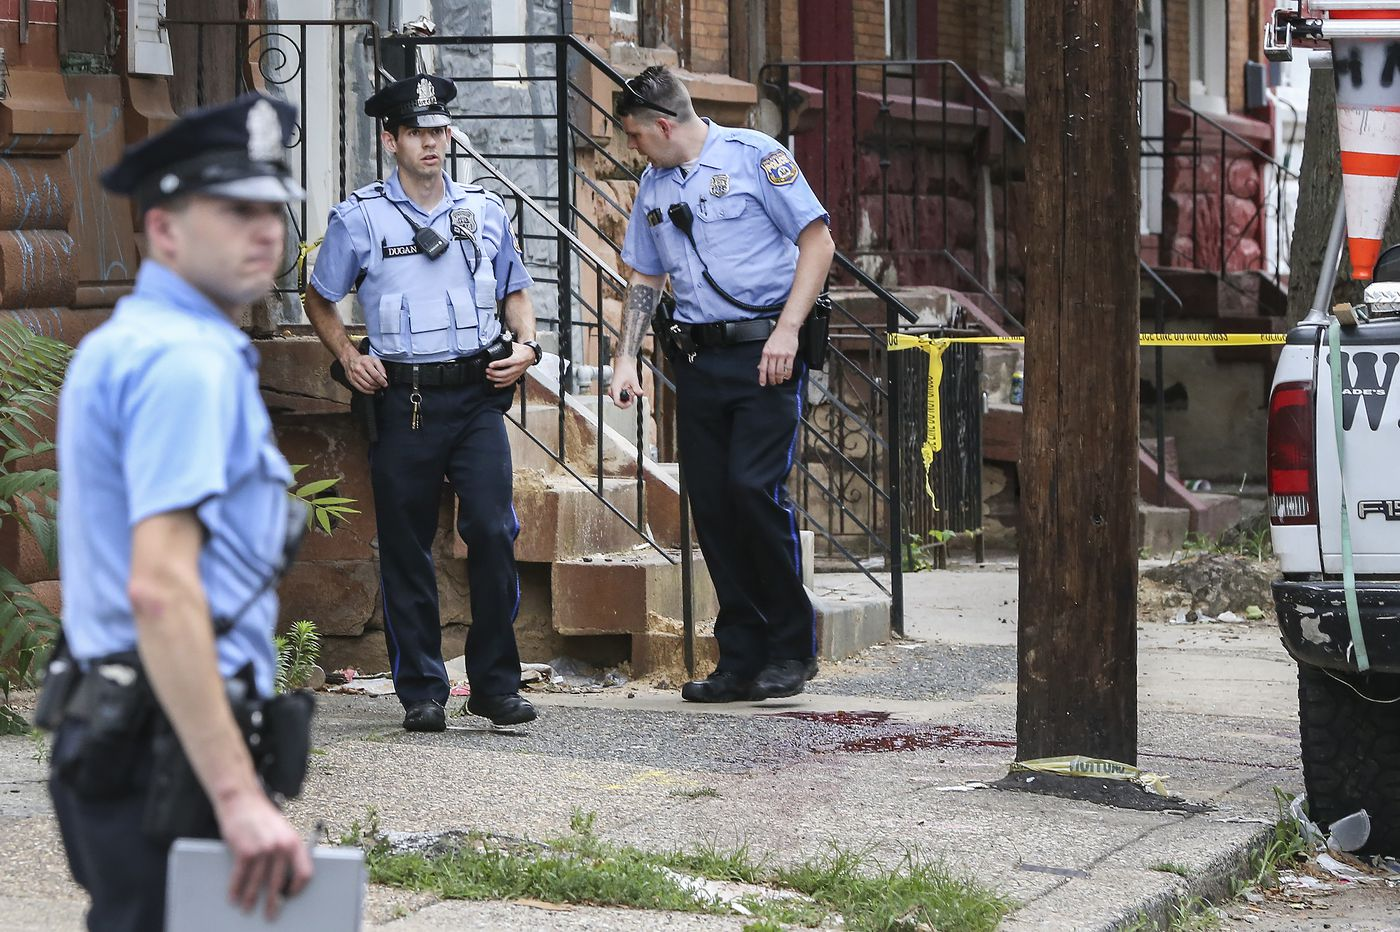 In Philly's fight for safer streets, one size doesn't fit all | Opinion